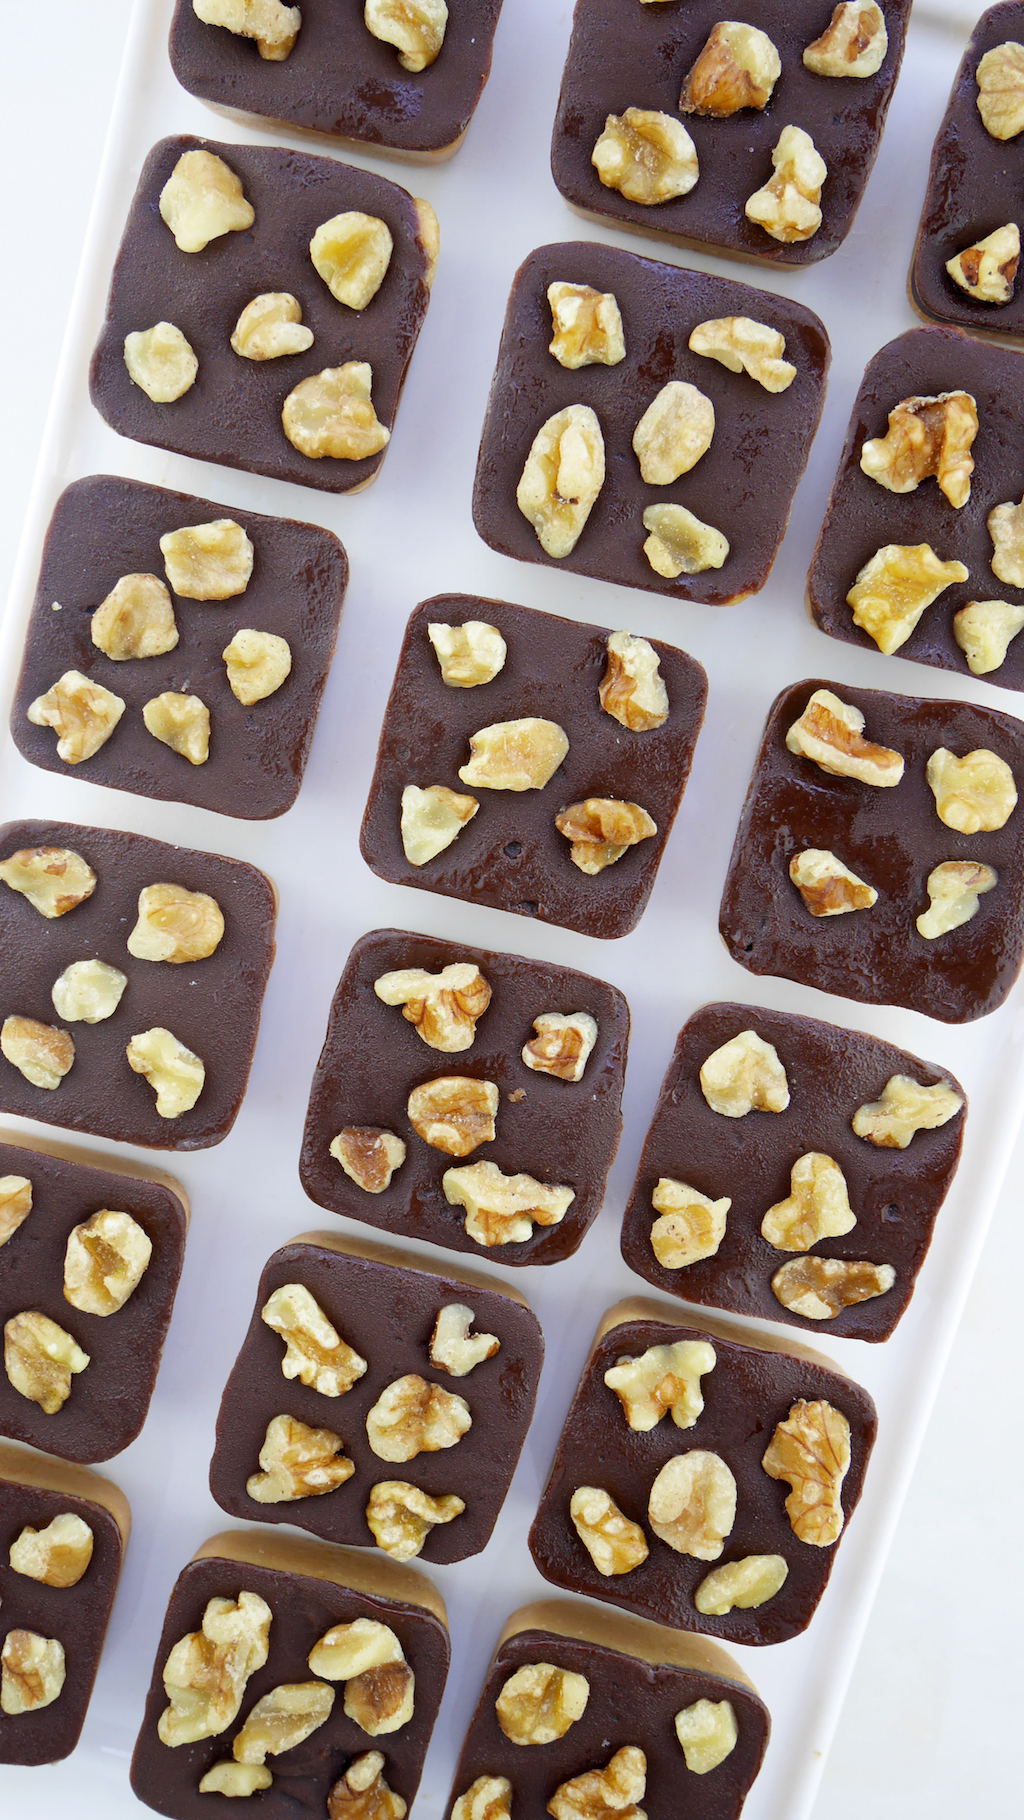 Wedderspoon Manuka Honey Chocolate Walnut Honey Bites